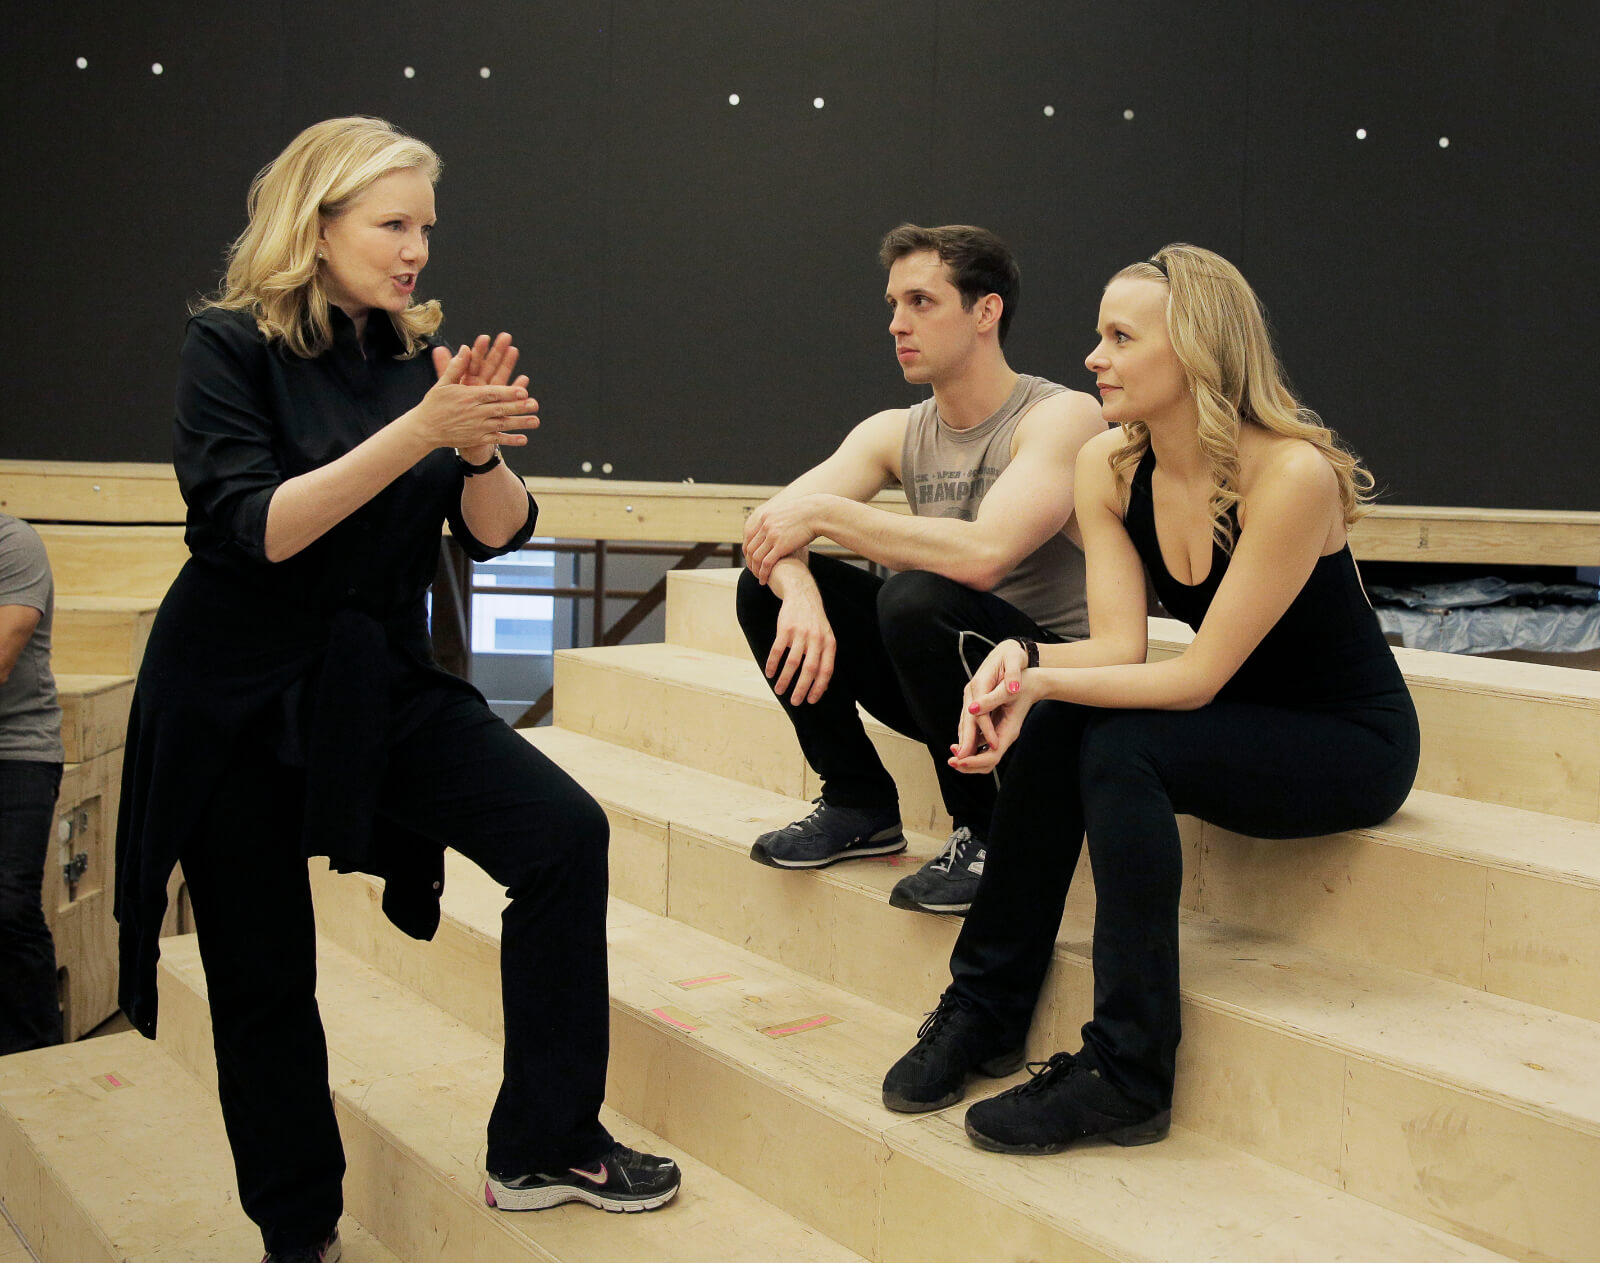 Susan Stroman rehearsing with Jason Lee Garrett & Bryn Dowling, she is directing the actors in the iconic circus scene.